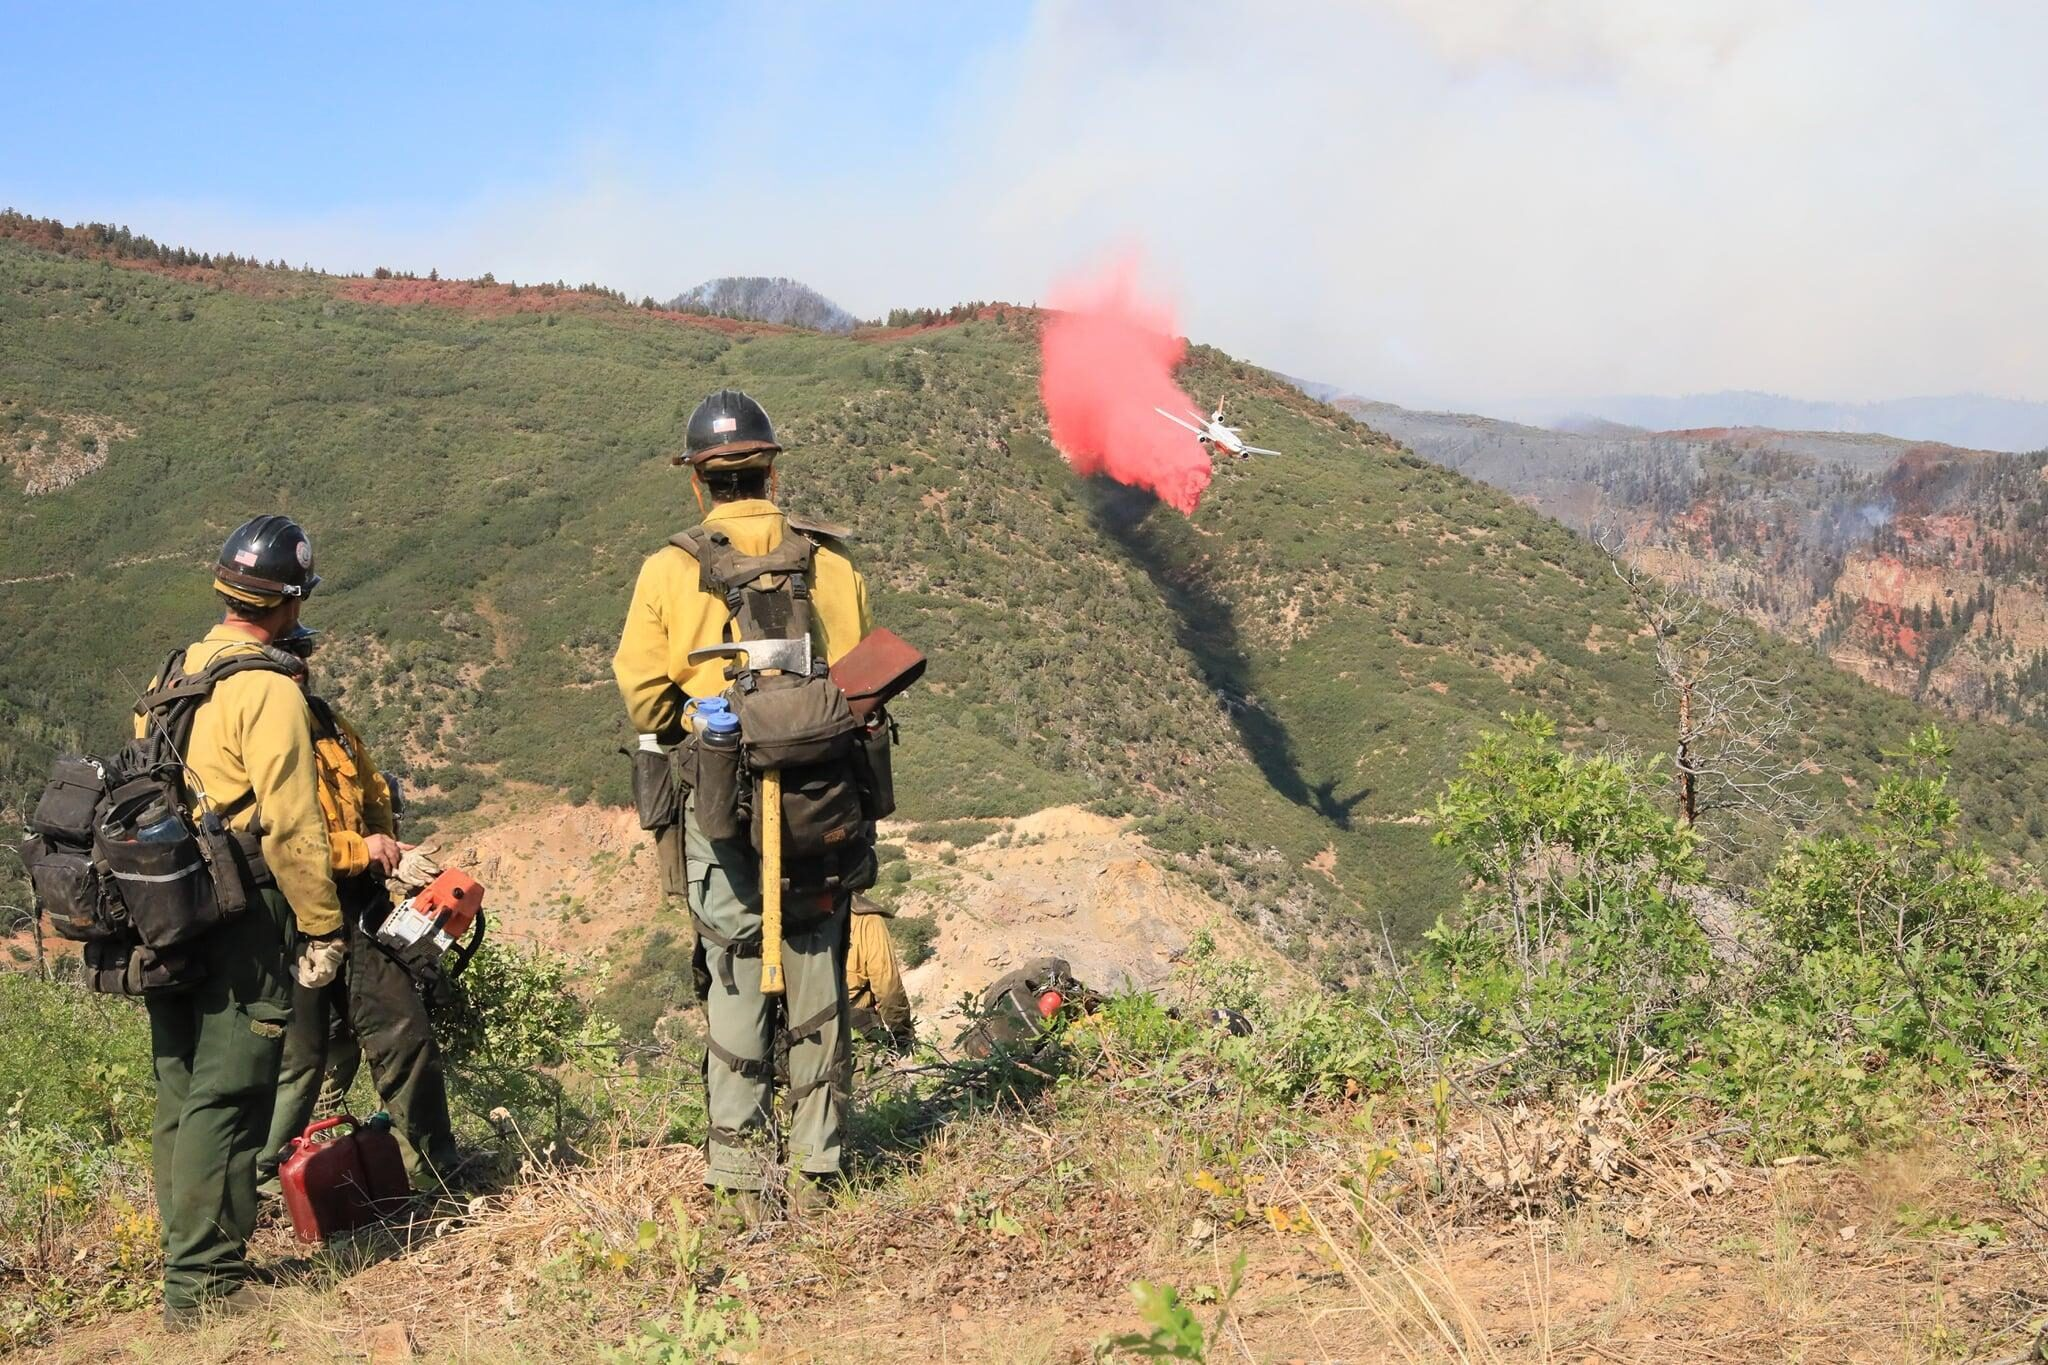 A plane drops retardant as part of efforts to fight the Grizzly Peak Fire near Glenwood Springs in August 2020.